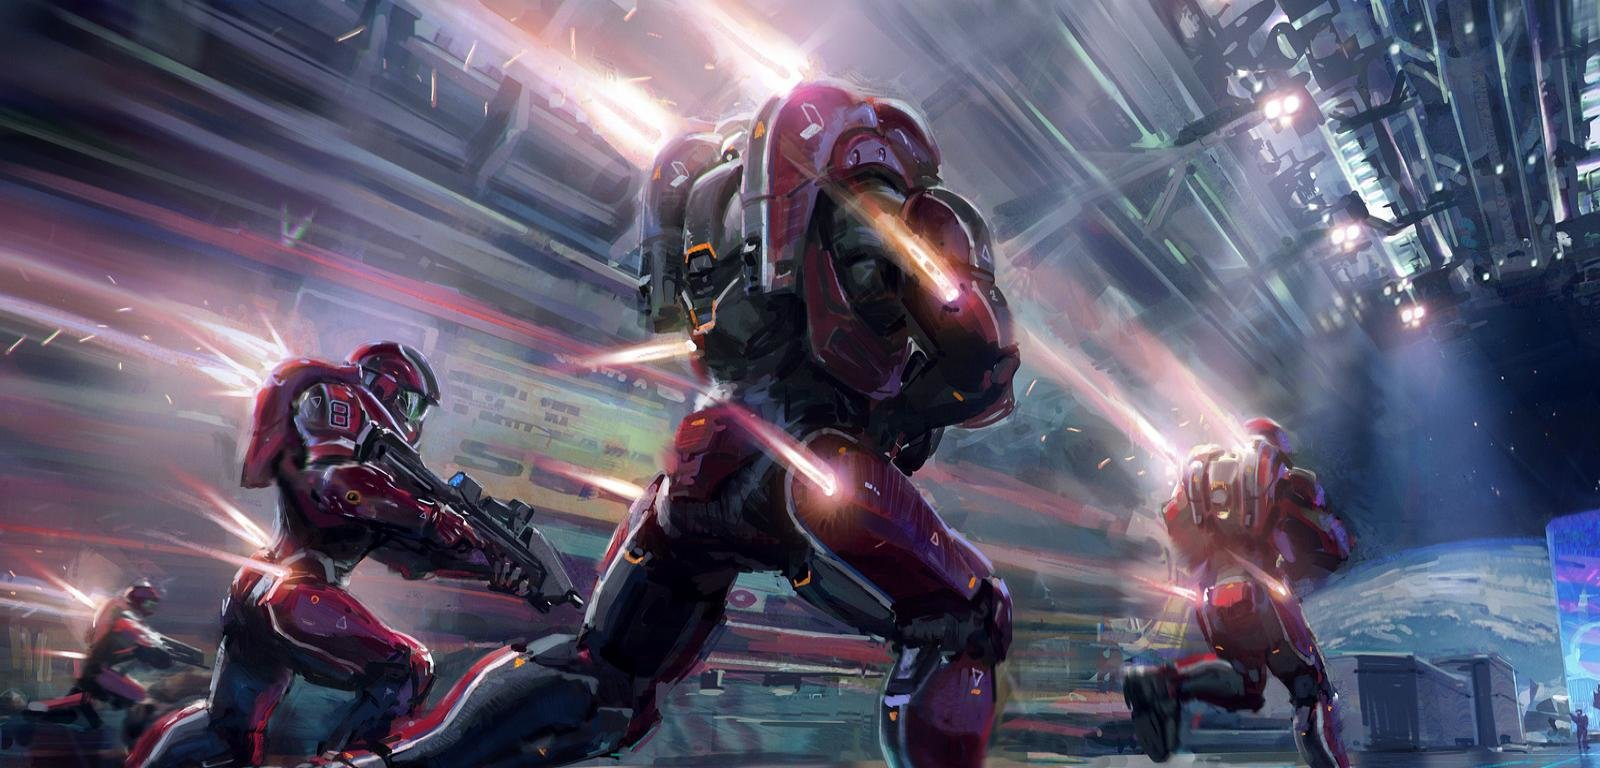 Free Halo 5: Guardians high quality wallpaper ID:117013 for hd 1600x768 desktop